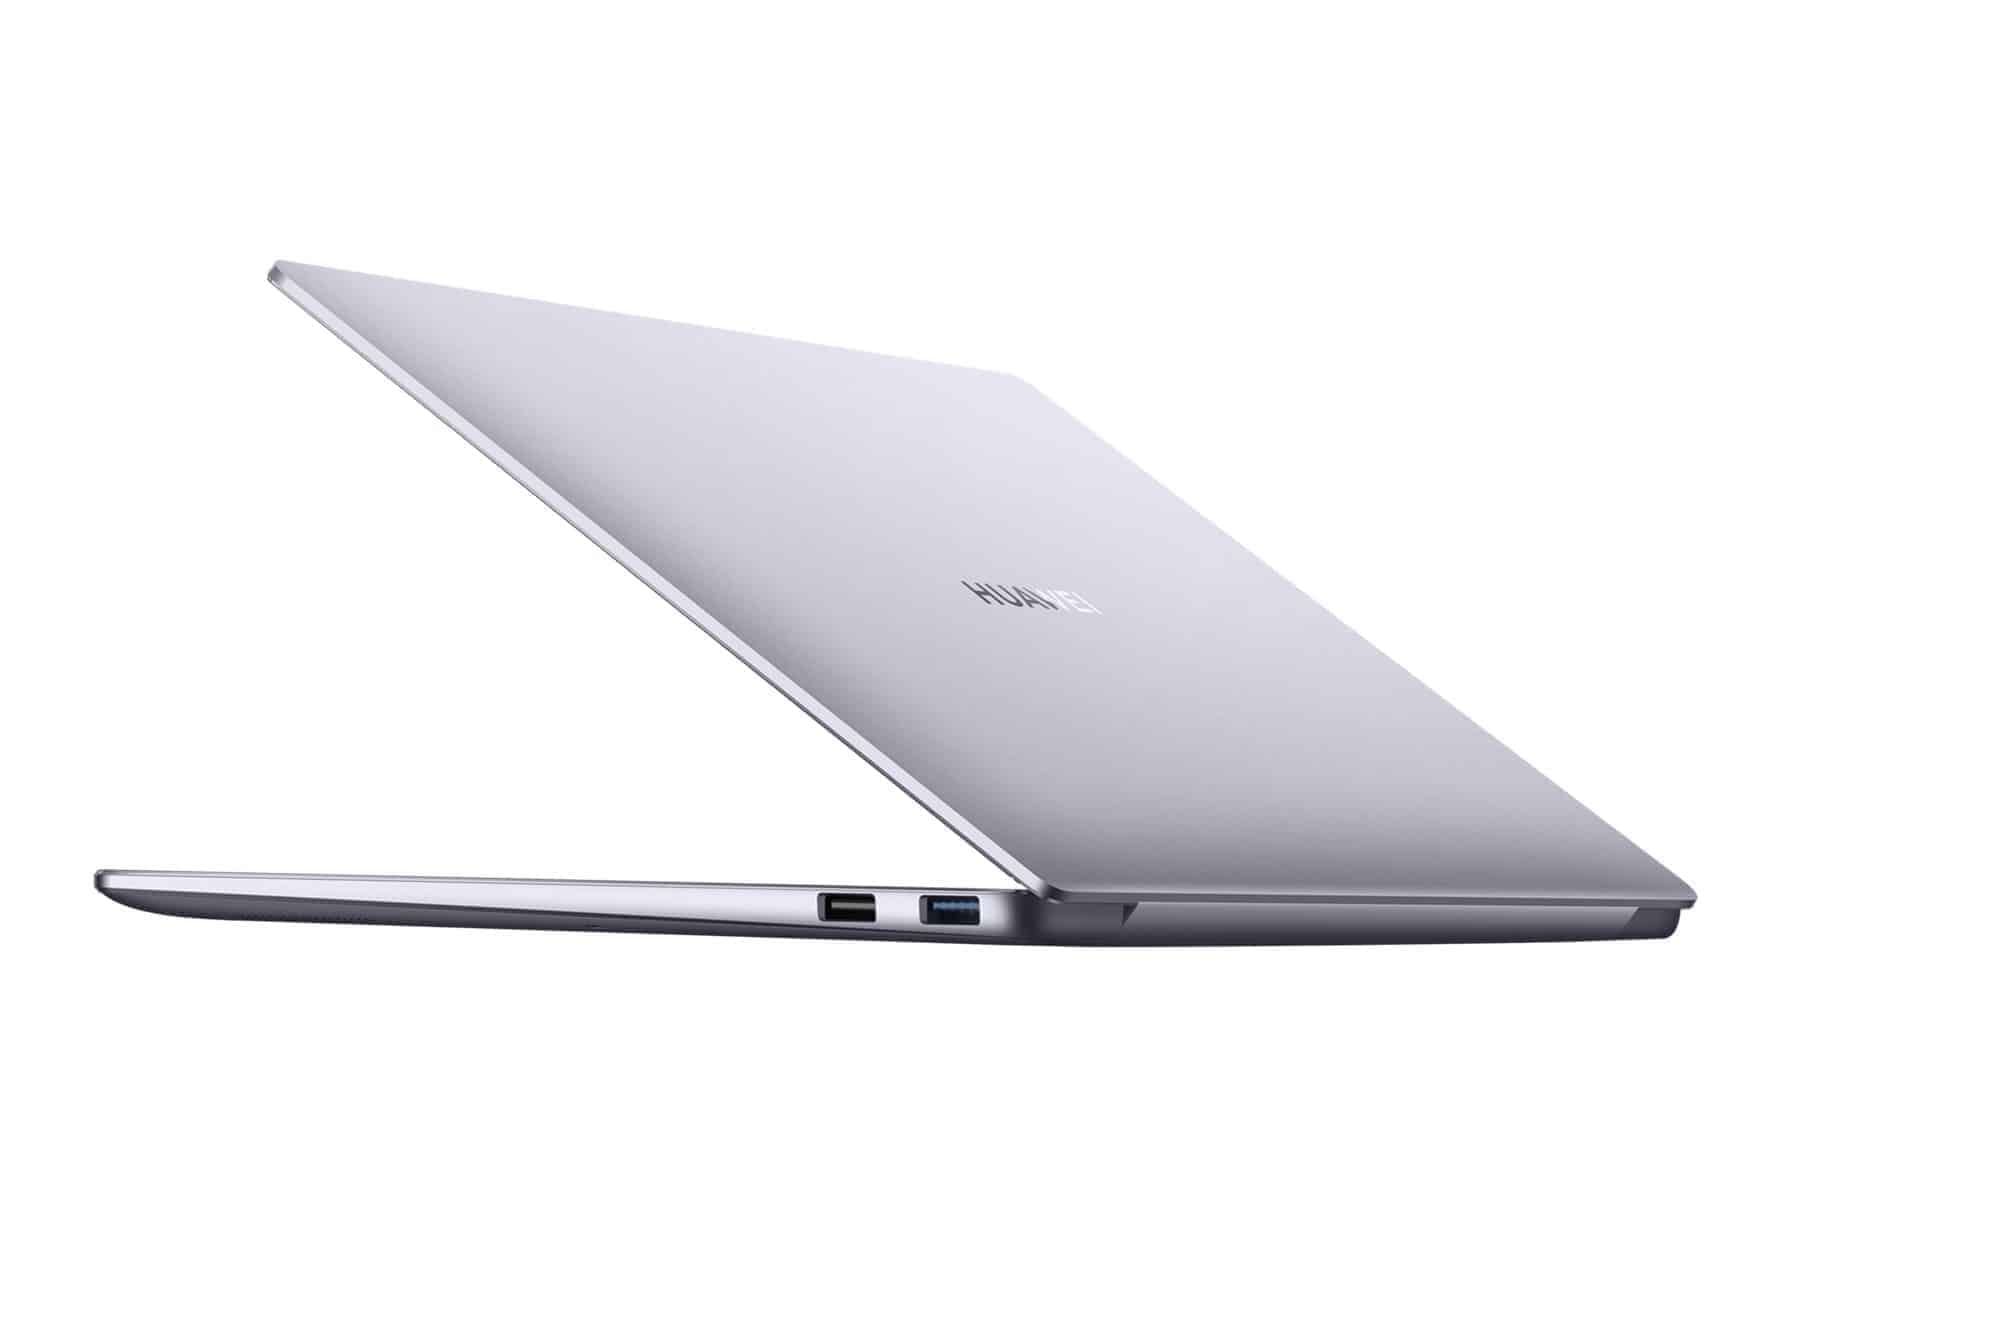 Huawei MateBook 14 is Huawei's new bet on PCs in Portugal